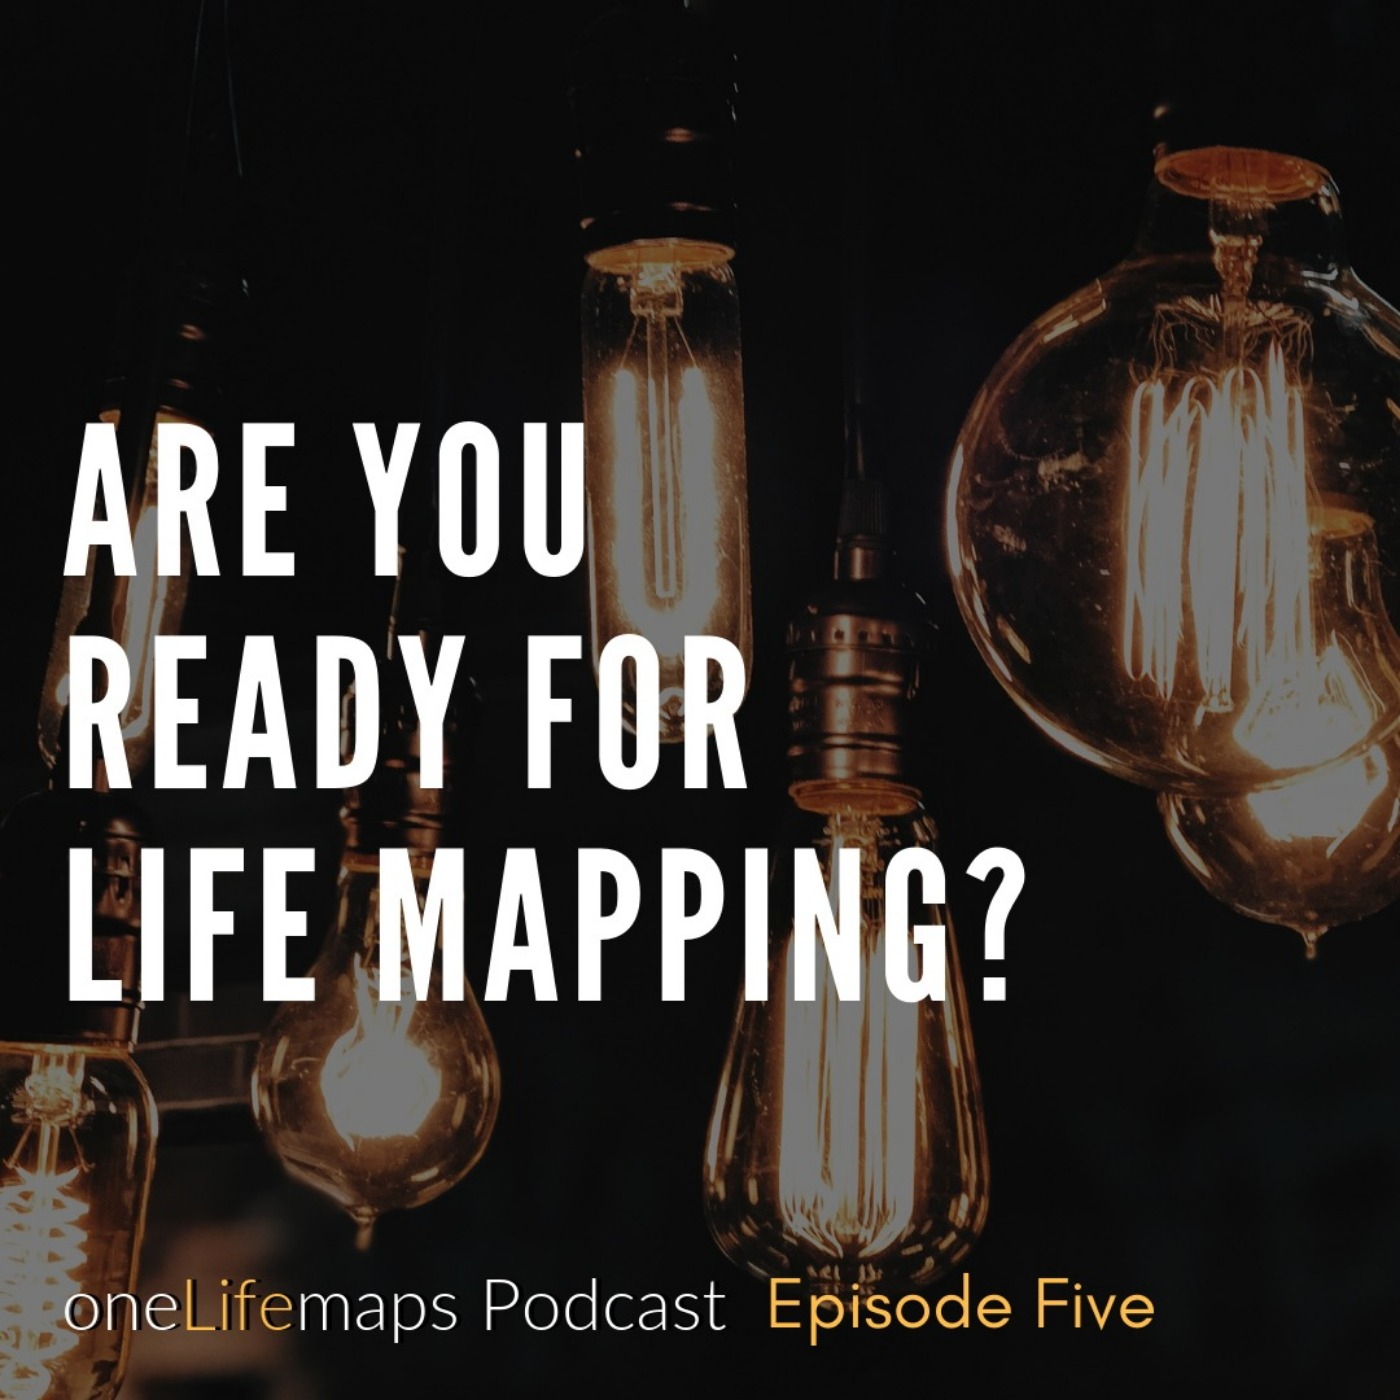 Are You Ready for Life Mapping?